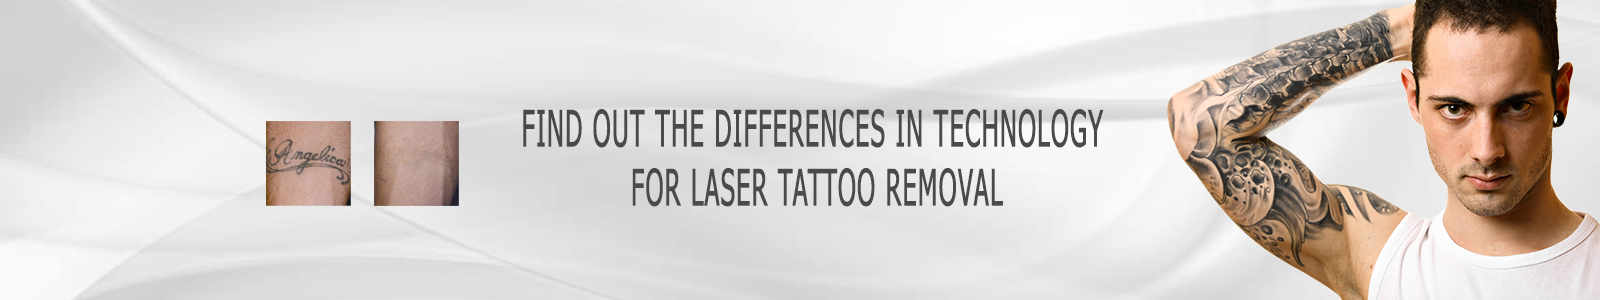 Tattoo Removal Technology